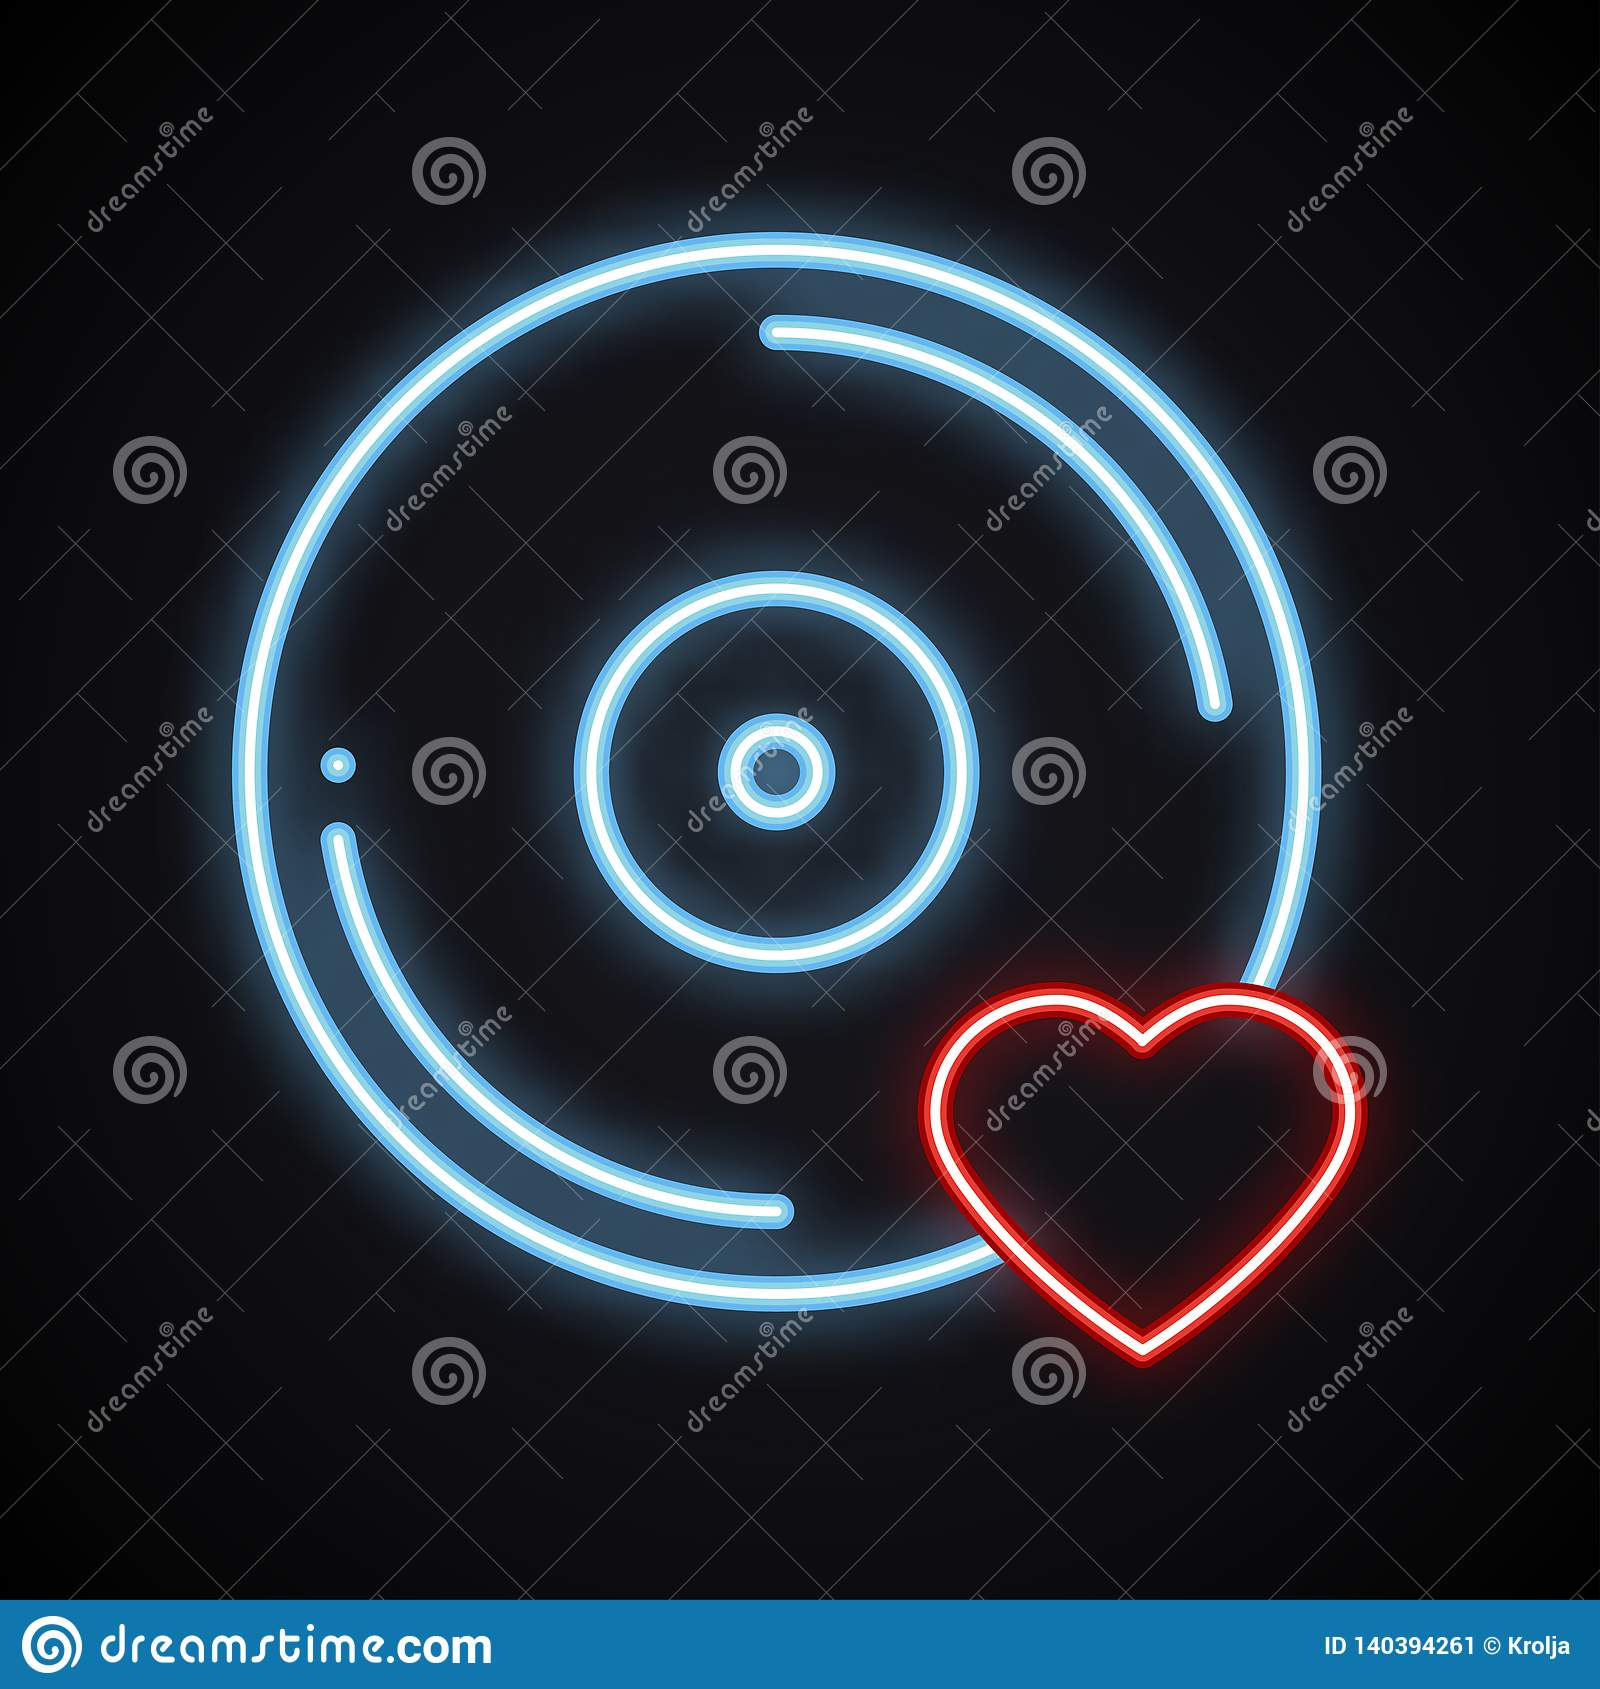 Realistic bright neon vinyl sign. Glowing music symbol. Favorite song. Club, record, disco, dance, nightlife, DJ, party